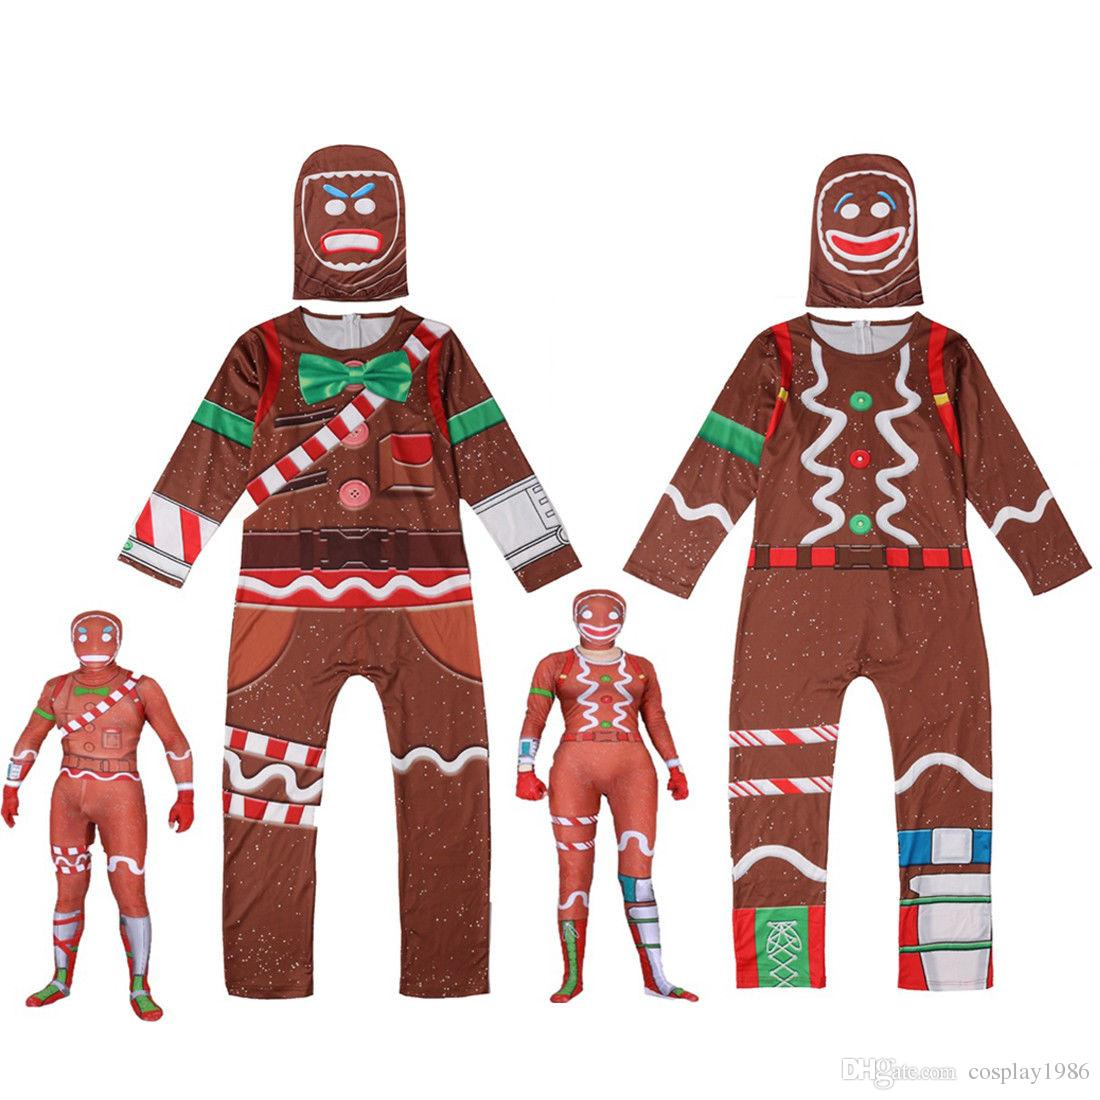 2019 halloween cosplay merry marauder ginger gunner cartoon costume party kids boys men jumpsuit zentai bodysuit catsuit mask outfits from cosplay1986 - gingerbread costume fortnite